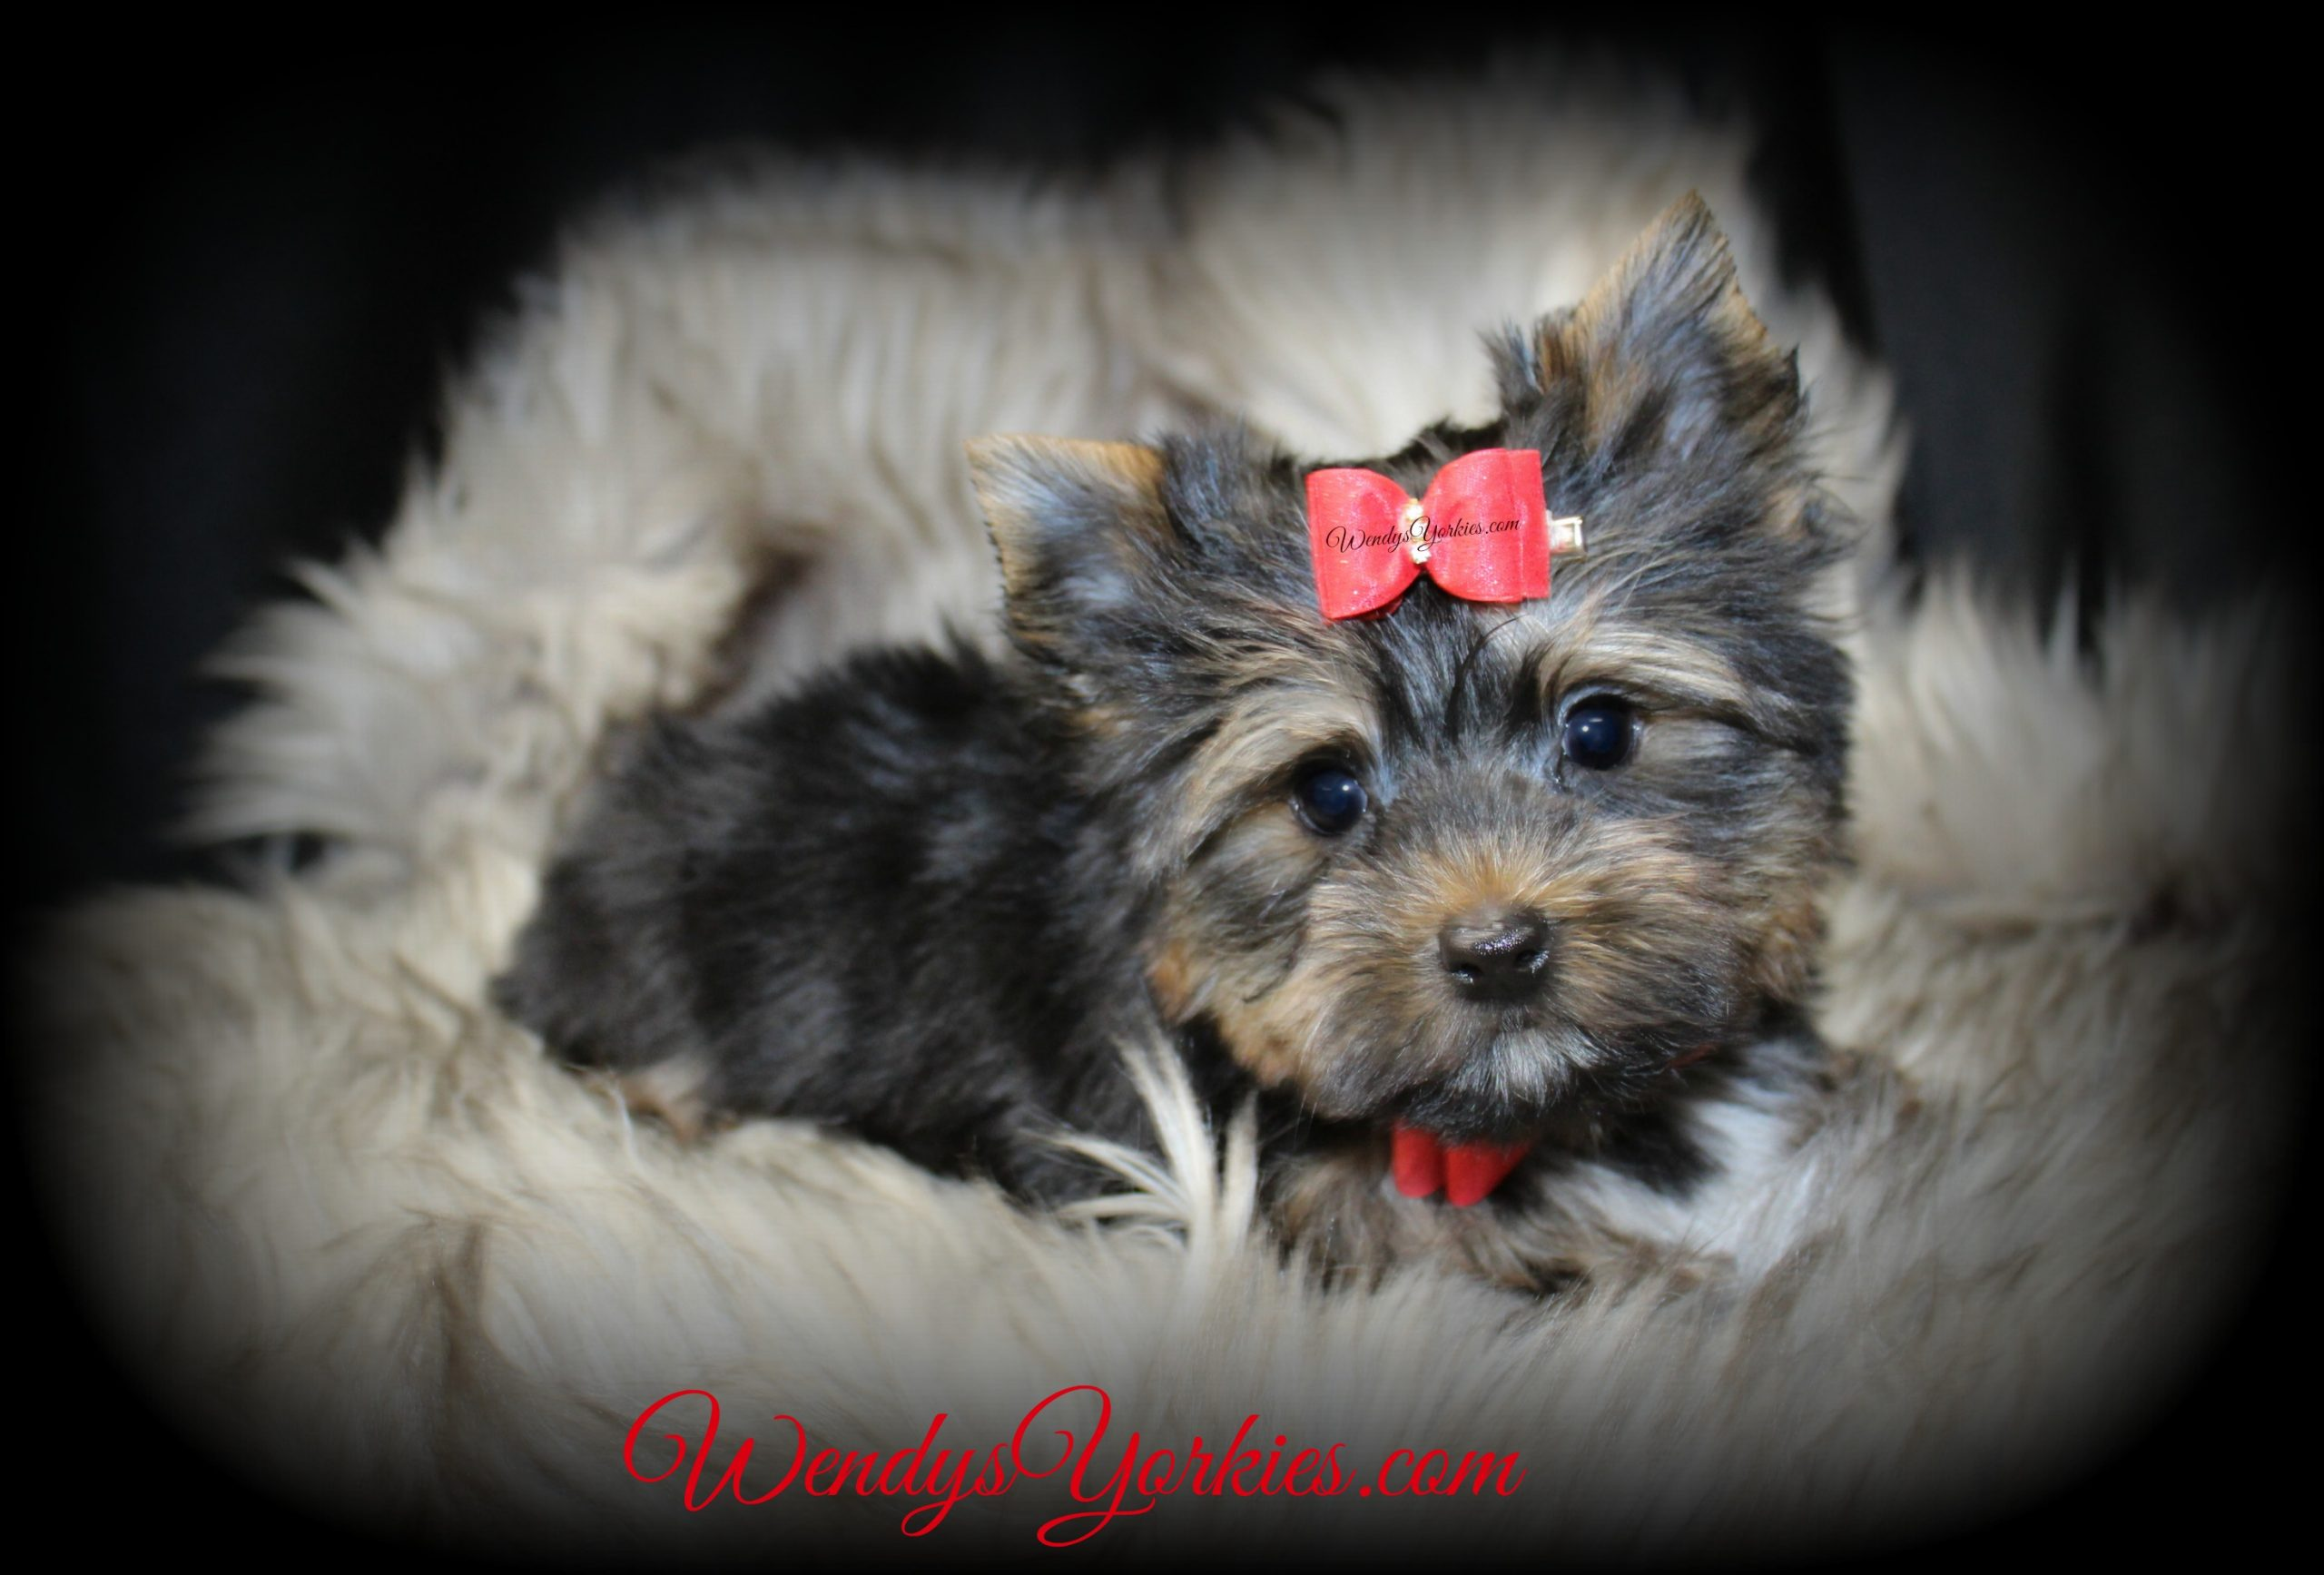 Male Yorkie puppy for sale, m3, WendysYorkies.com